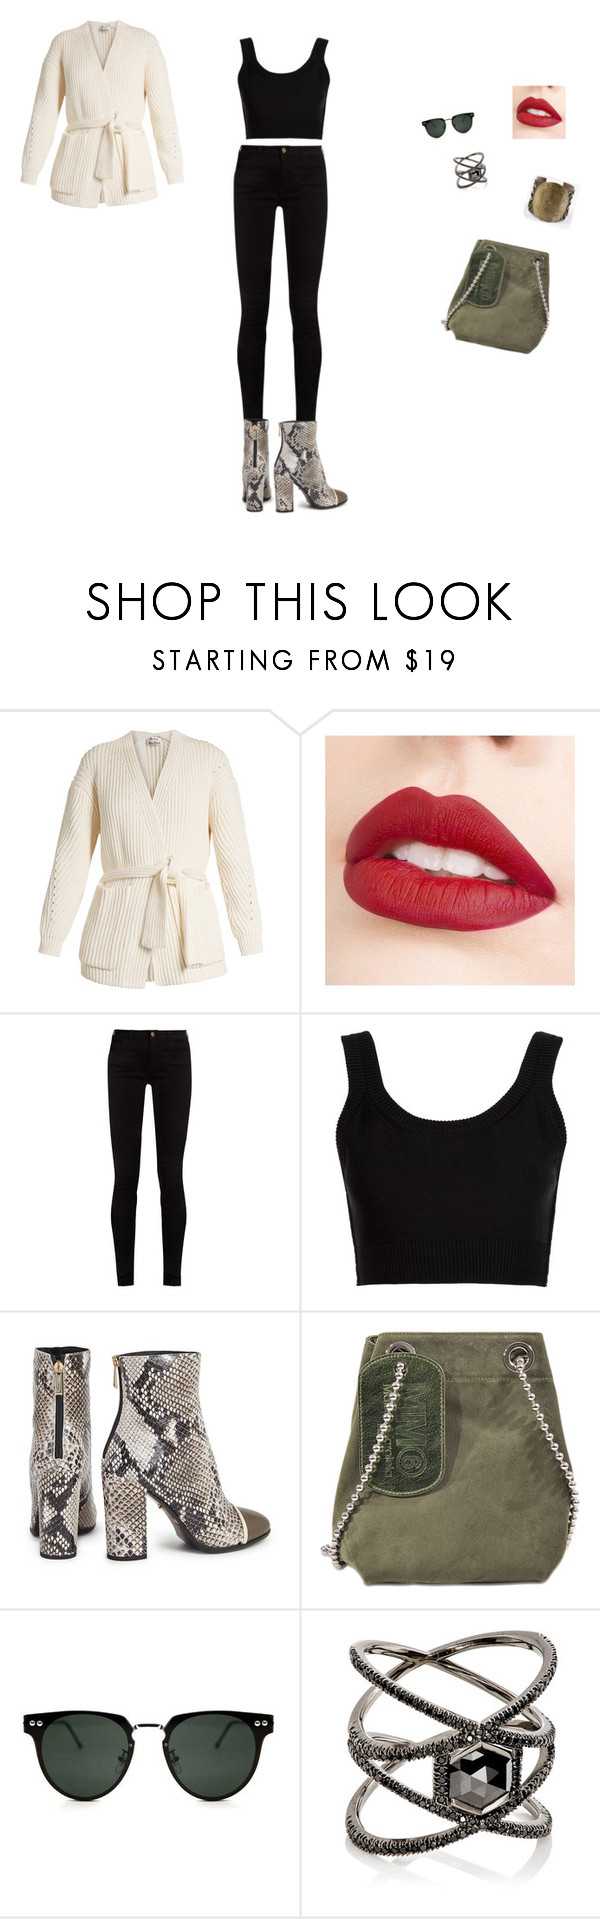 """""""Sans titre #2970"""" by yesmine-bengharbia ❤ liked on Polyvore featuring Acne Studios, Jouer, Gucci, Calvin Klein Collection, Just Cavalli, Maison Margiela, Spitfire and Eva Fehren"""